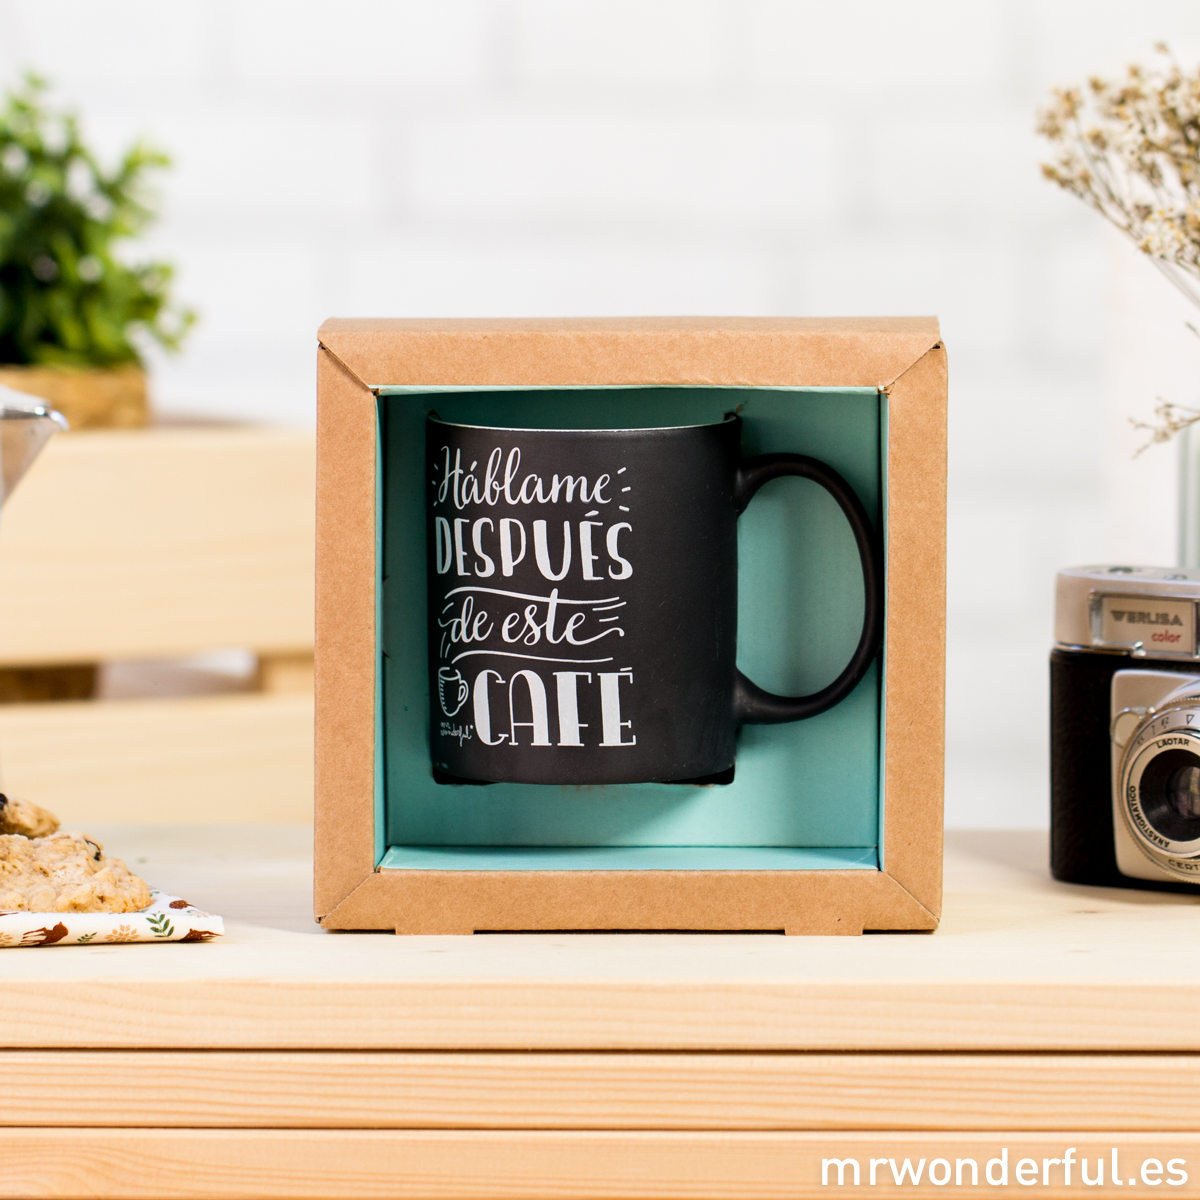 mrwonderful_8436547191420_WON-194_TAZA_Taza-Negra-hablame-despues-de-este-cafe-200